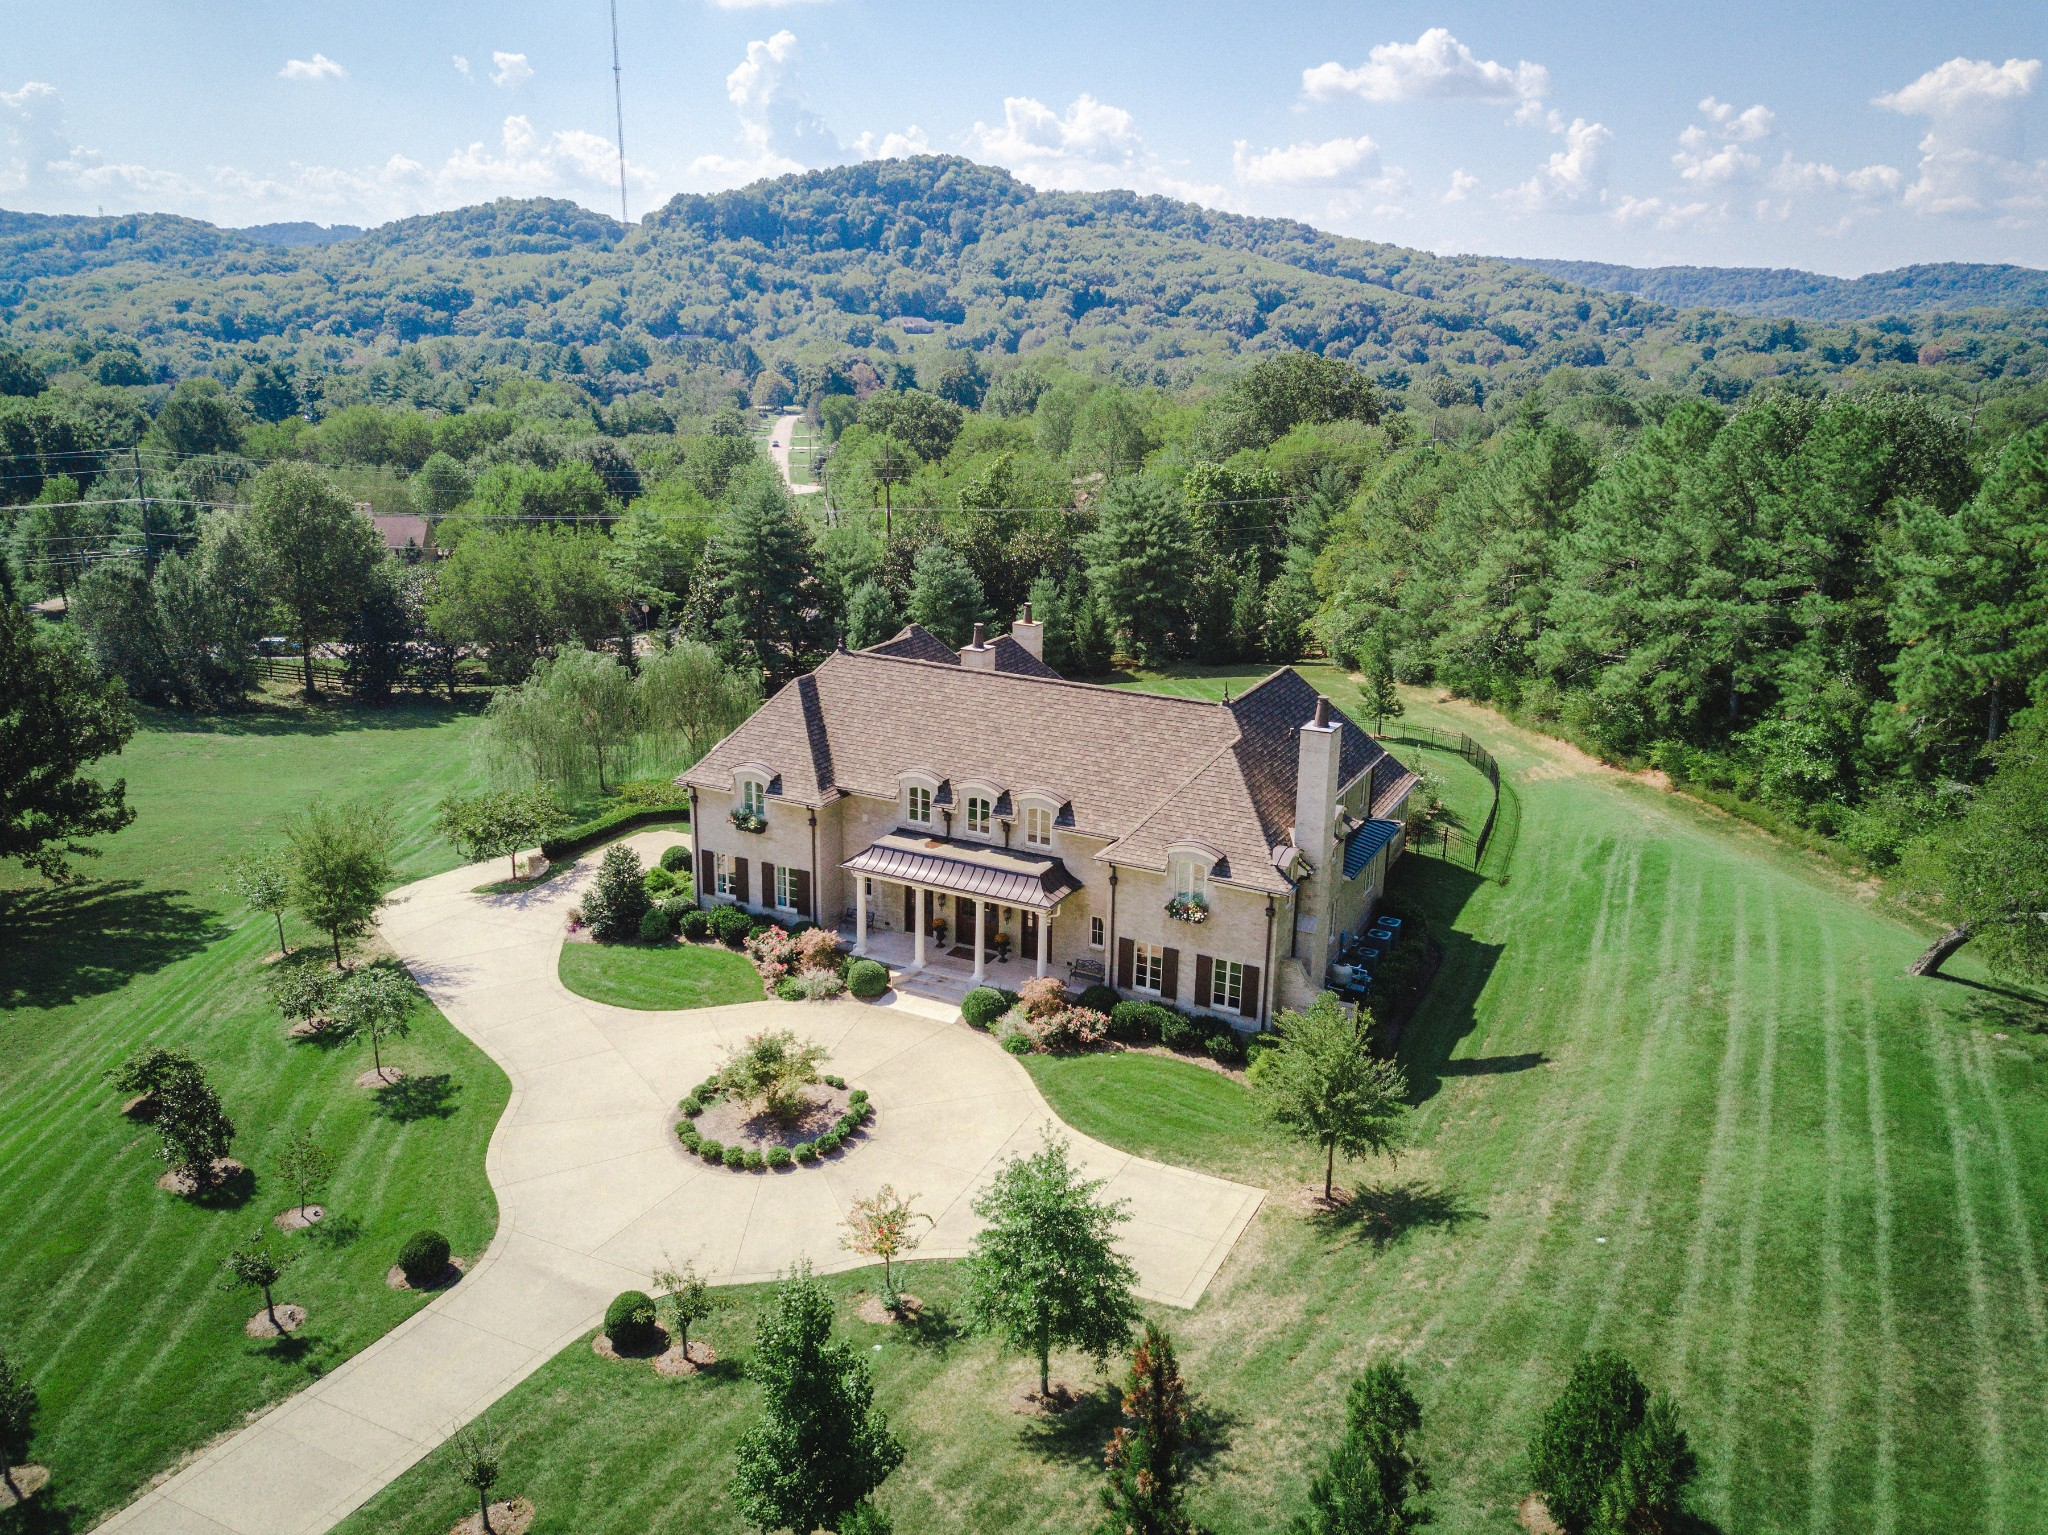 409 Saint Edmunds Ct, Brentwood, TN 37027 - Brentwood, TN real estate listing